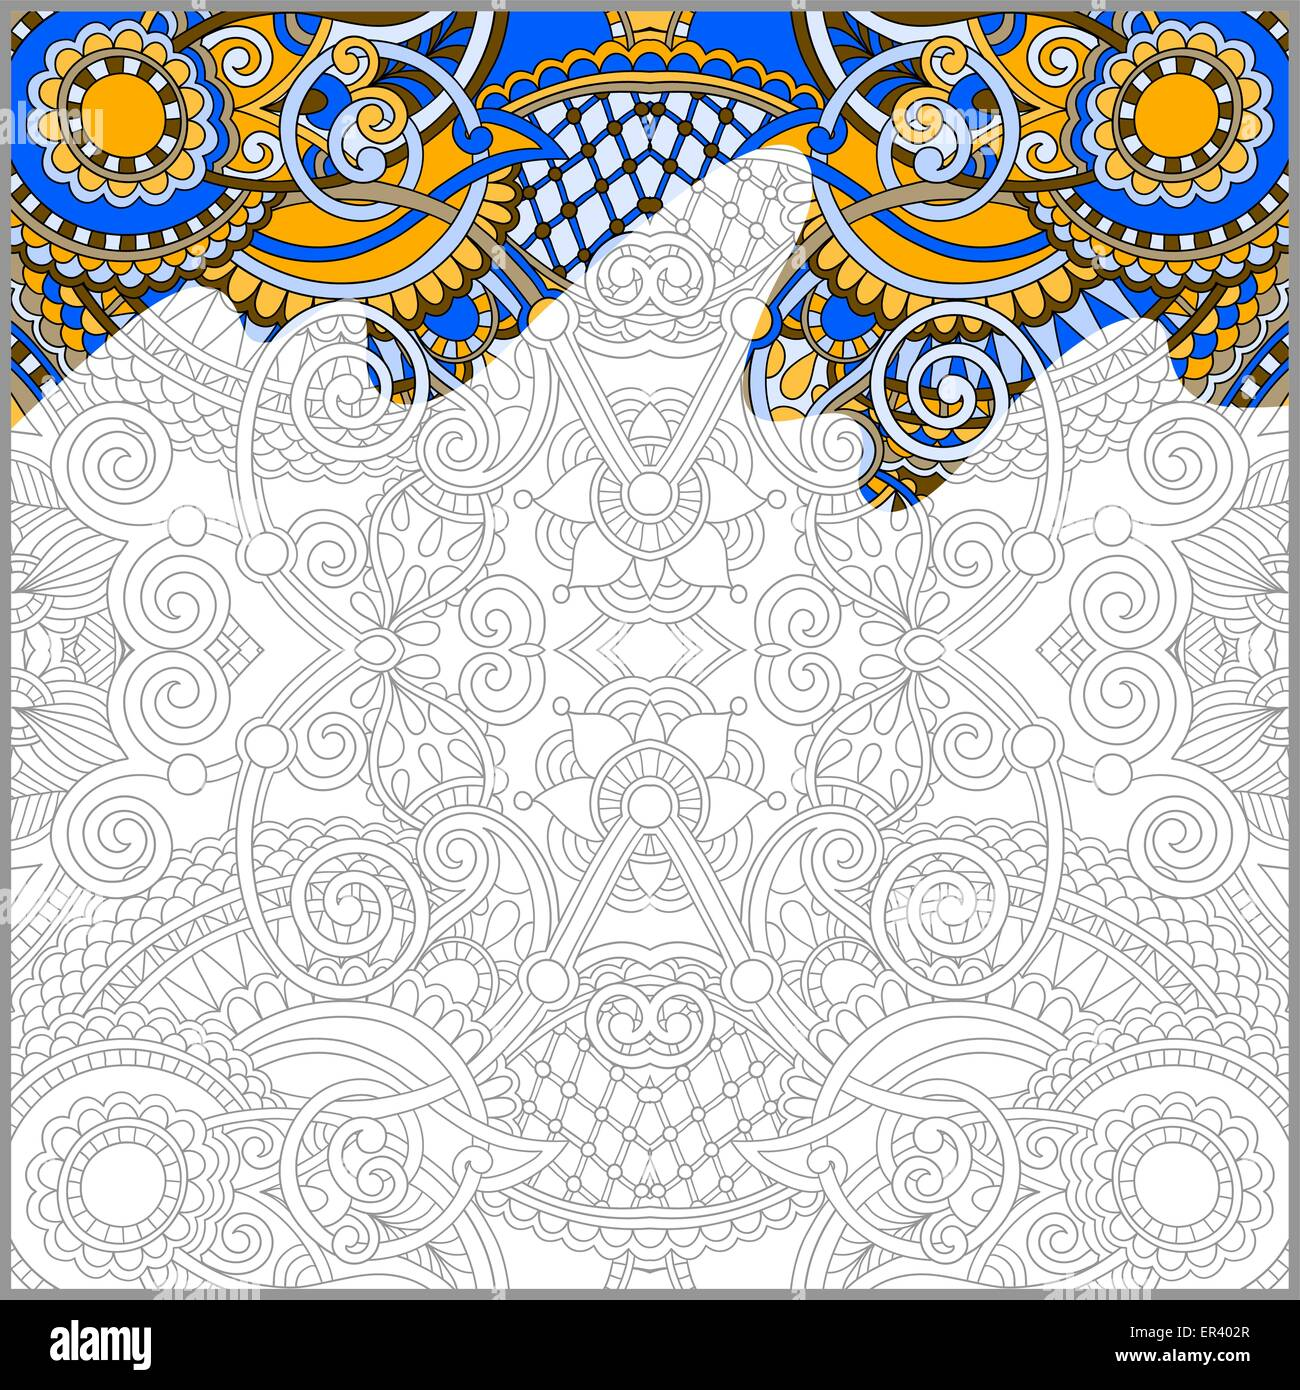 Unique Coloring Book Square Page For Adults Stock Vector Art Amp Illustration Vector Image